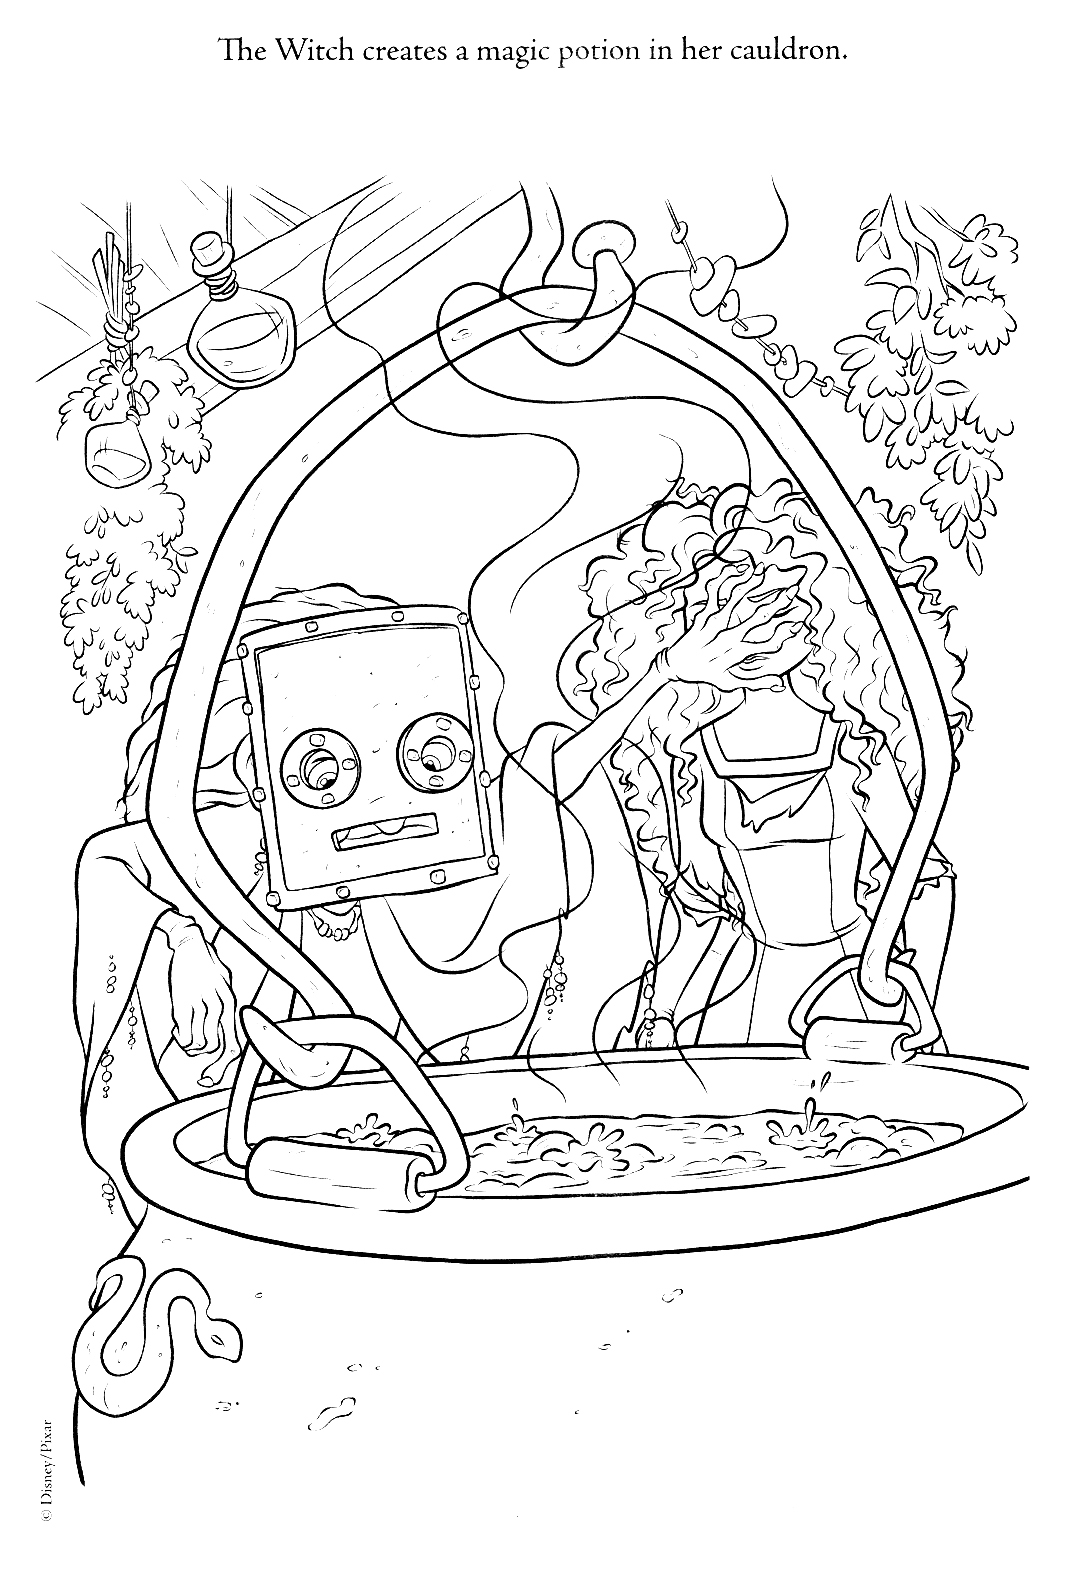 New Ribelle - The Brave coloring pages (A bit spoiler)